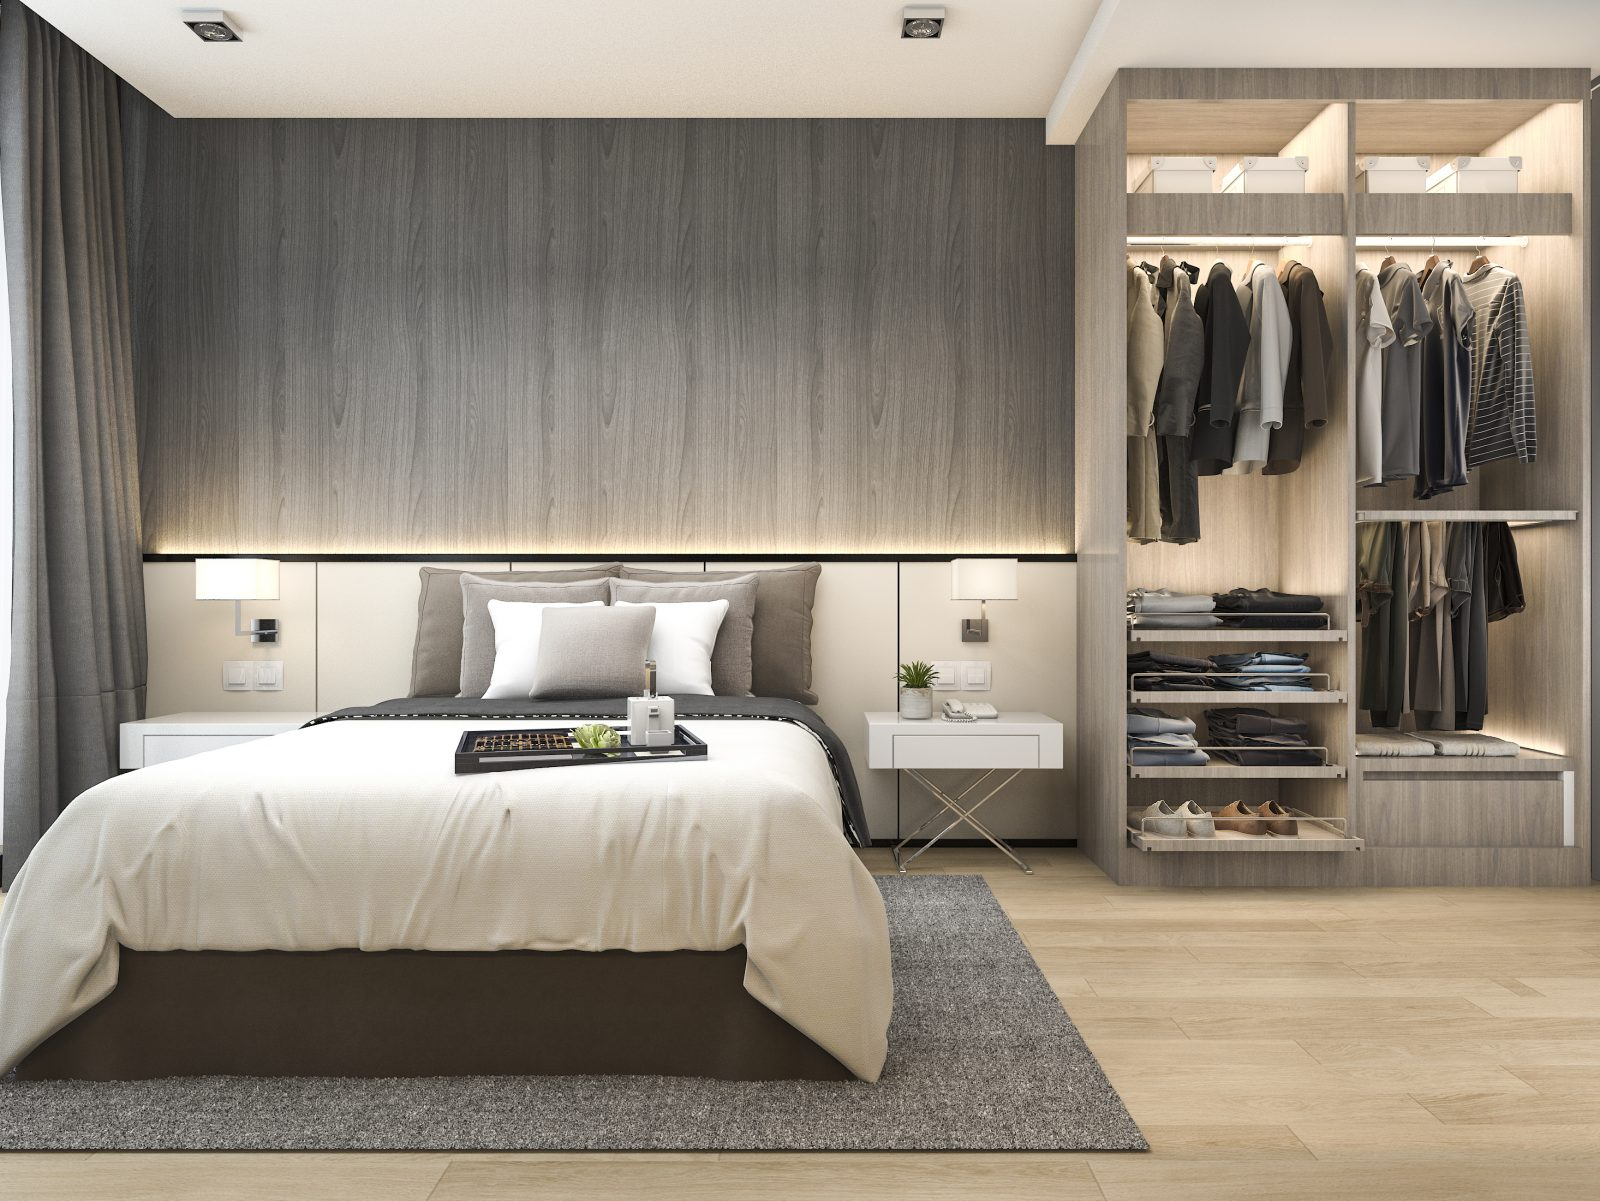 A hotel room with bed and illuminated closet containing clothes.